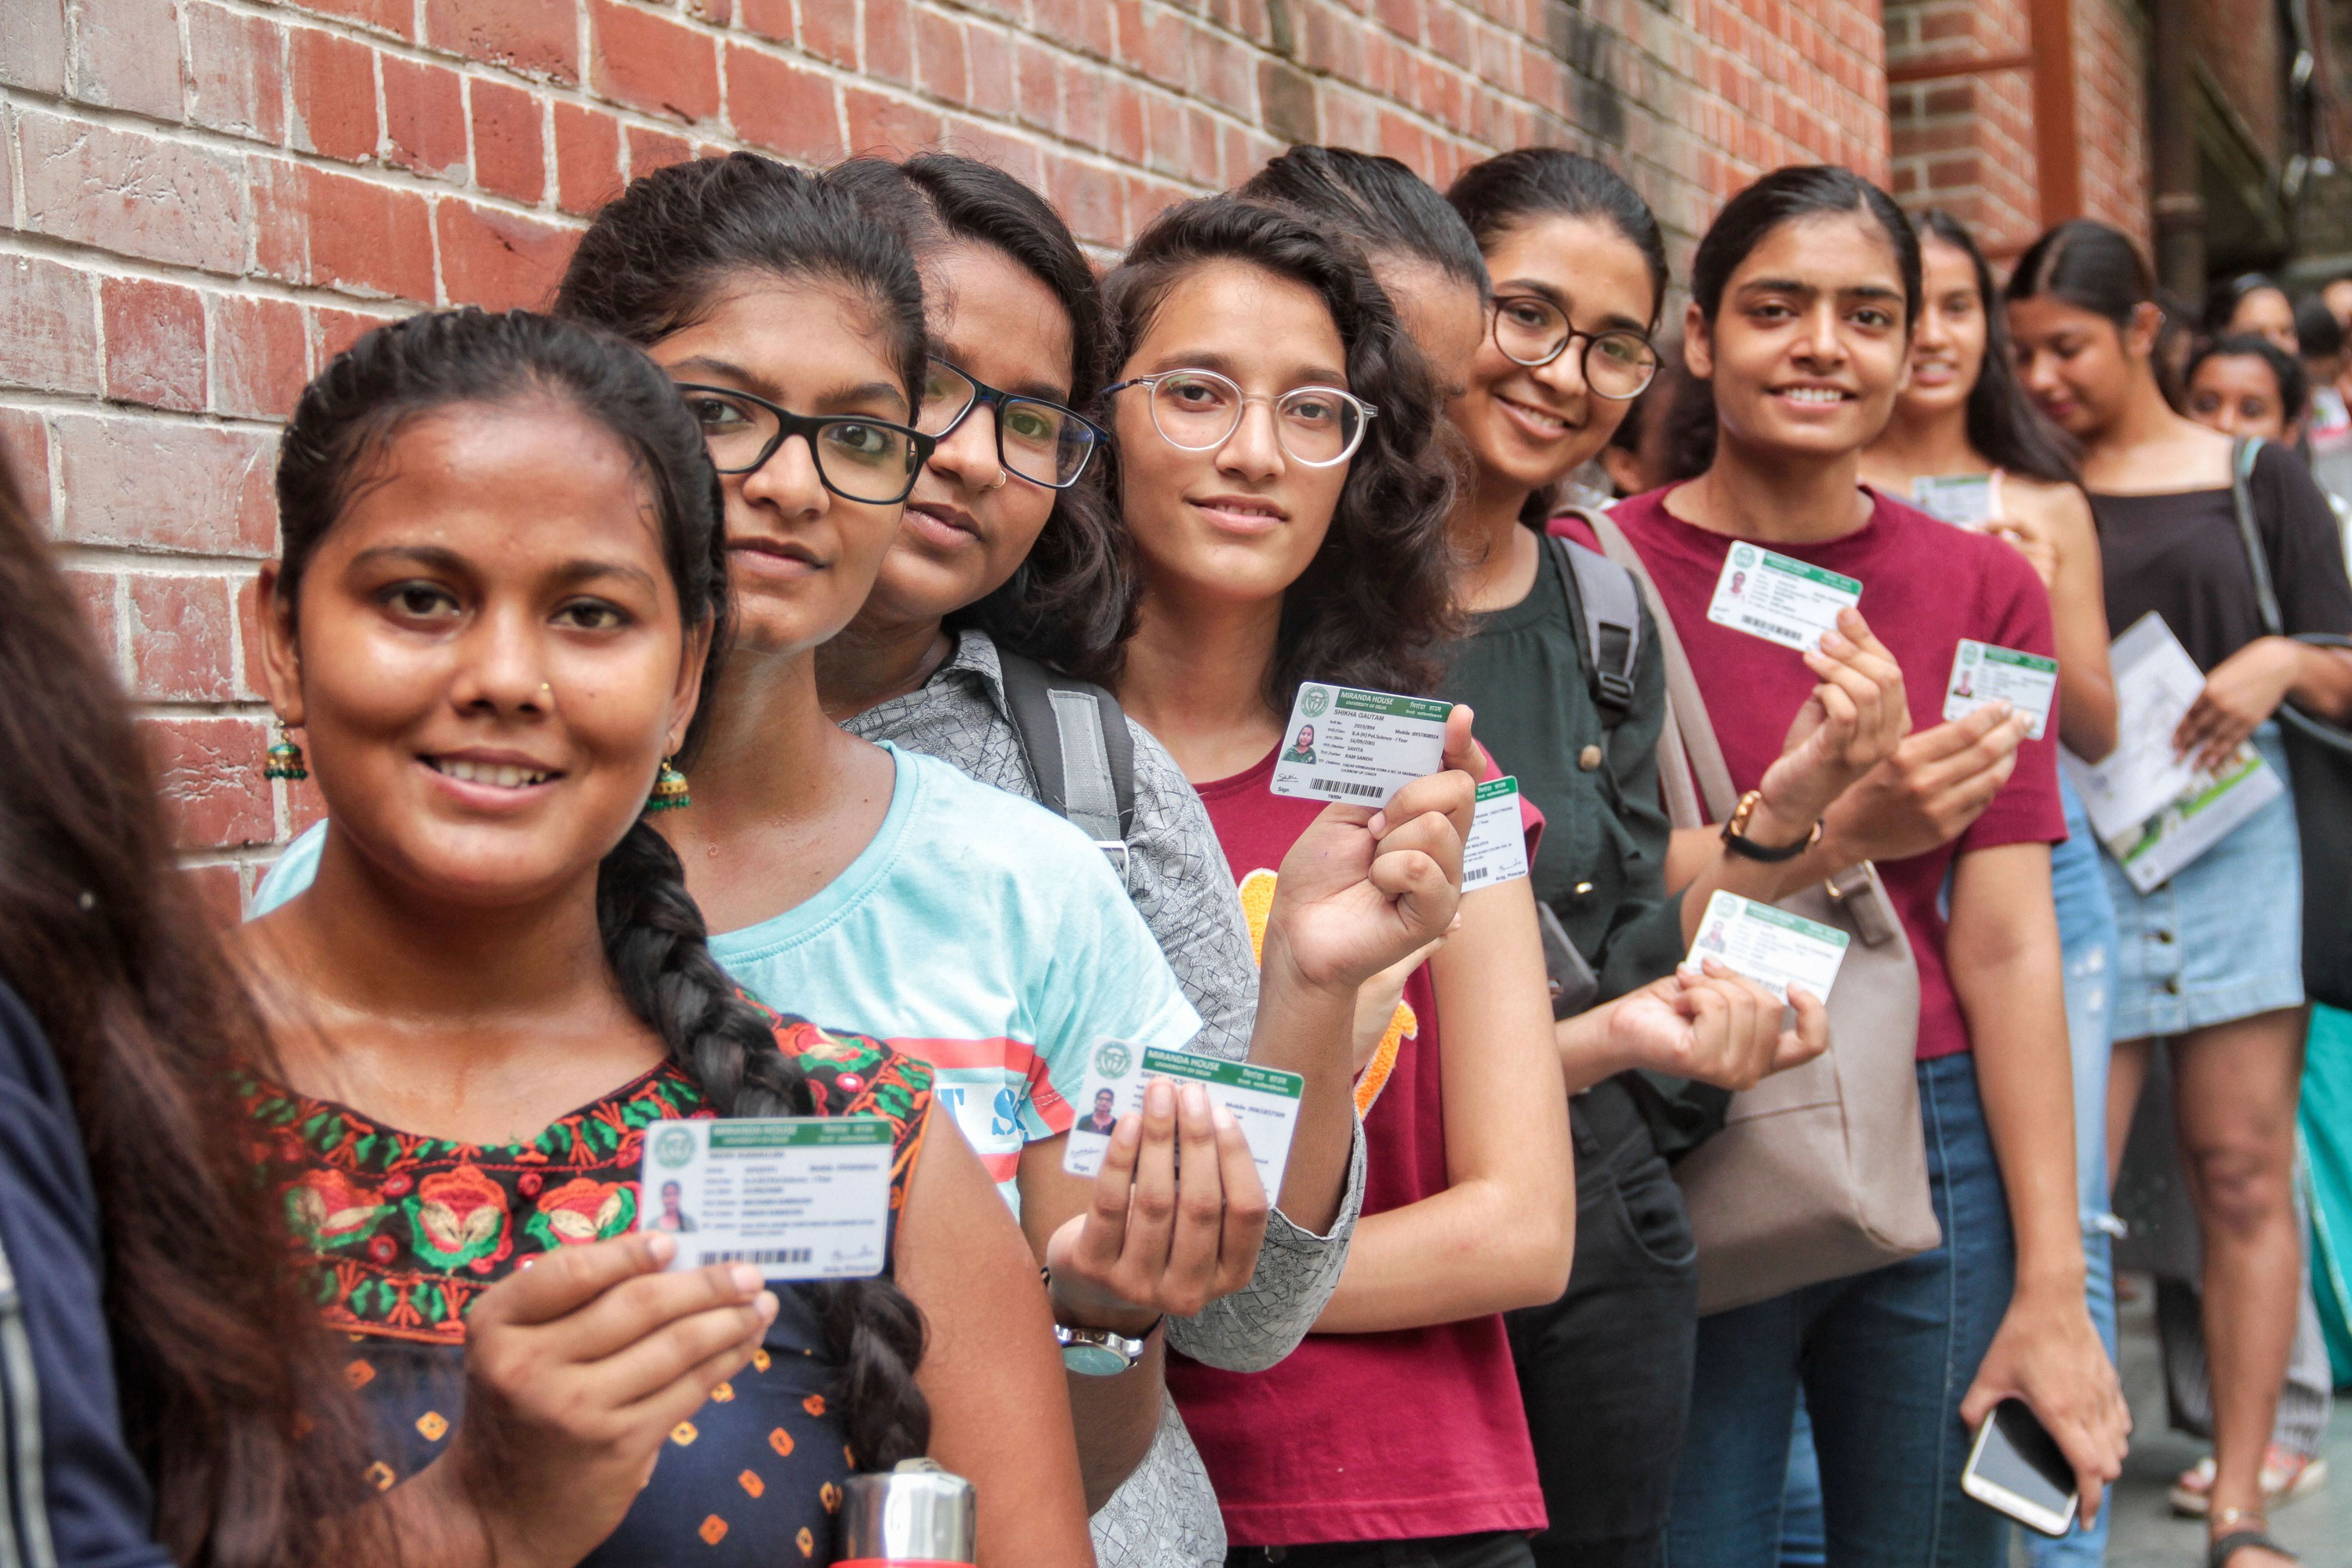 Students queue up with their identity cards to cast their votes for the Delhi University Students' Union elections, at Miranda House College in North Campus, in New Delhi, Thursday, September 12, 2019